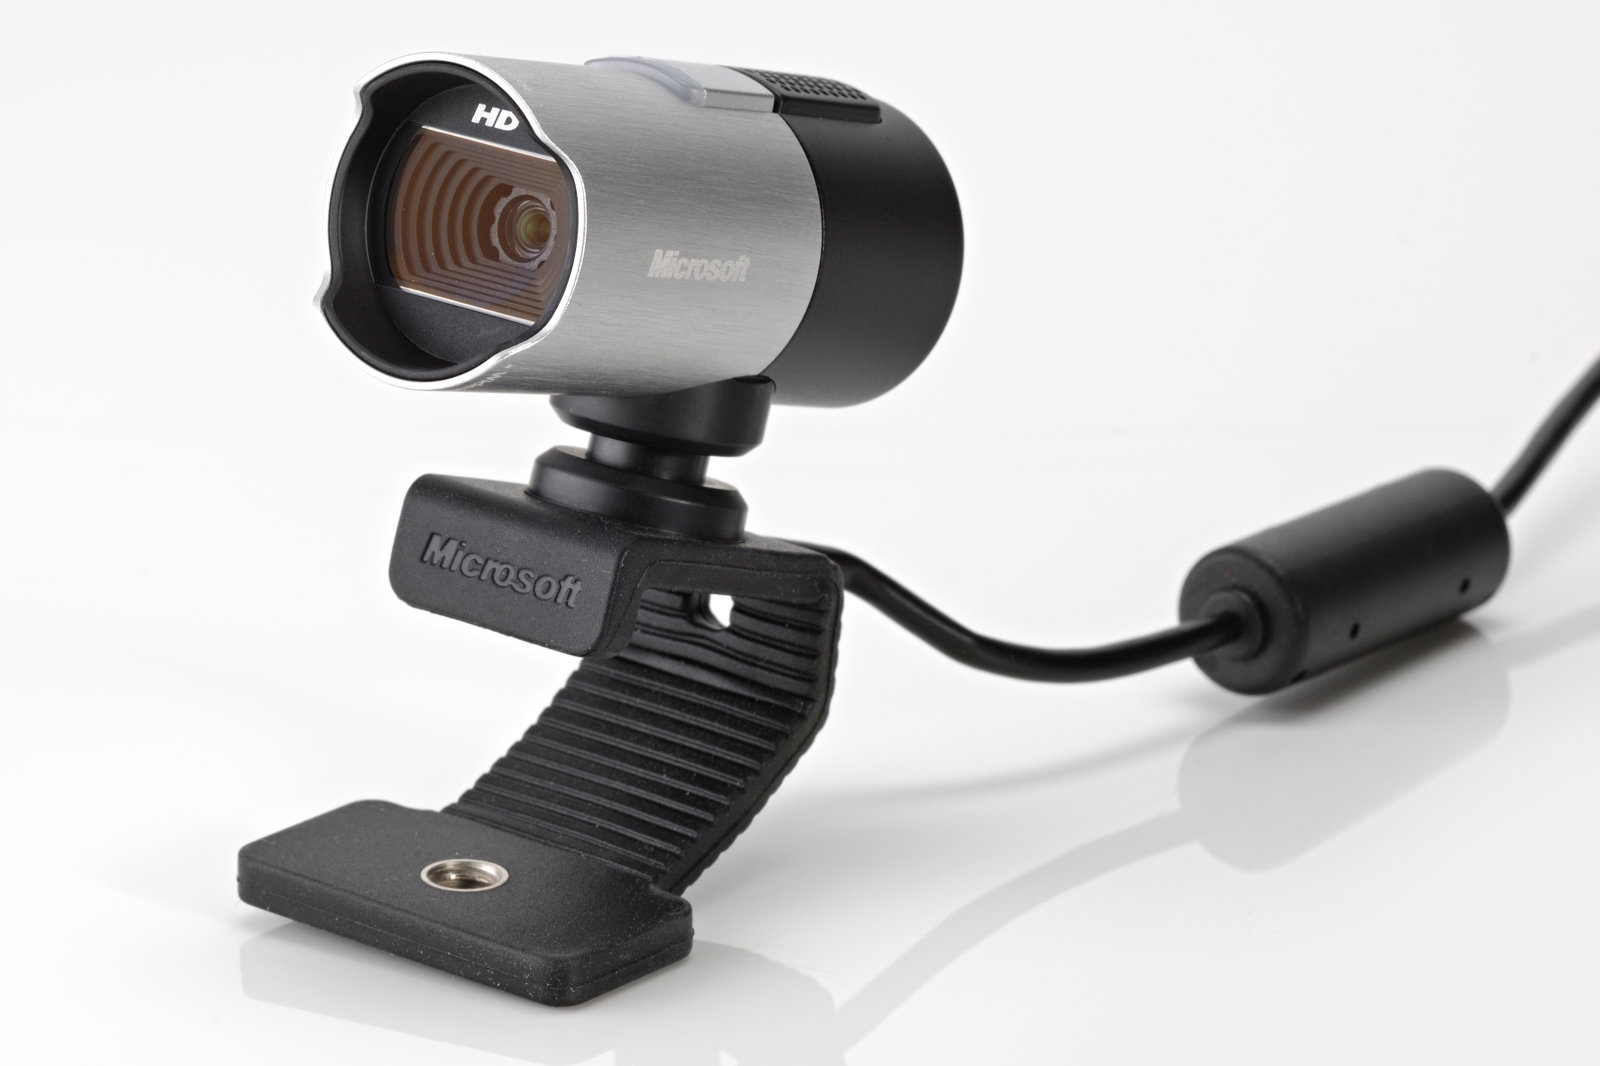 Microsoft's first webcams in years might include Xbox One support | DeviceDaily.com